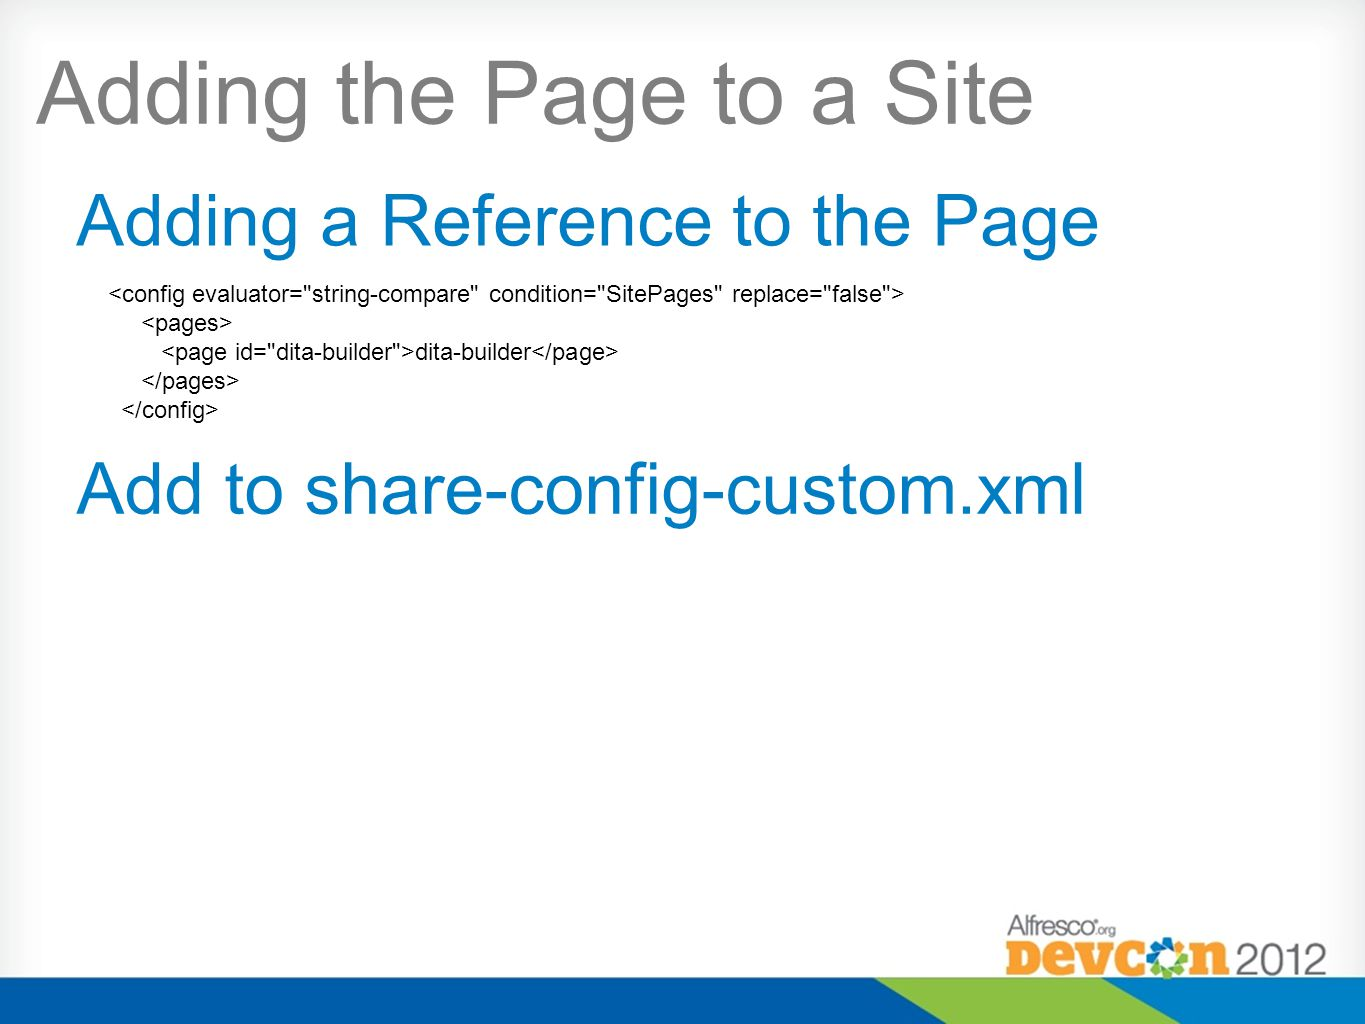 Adding the Page to a Site dita-builder Adding a Reference to the Page Add to share-config-custom.xml